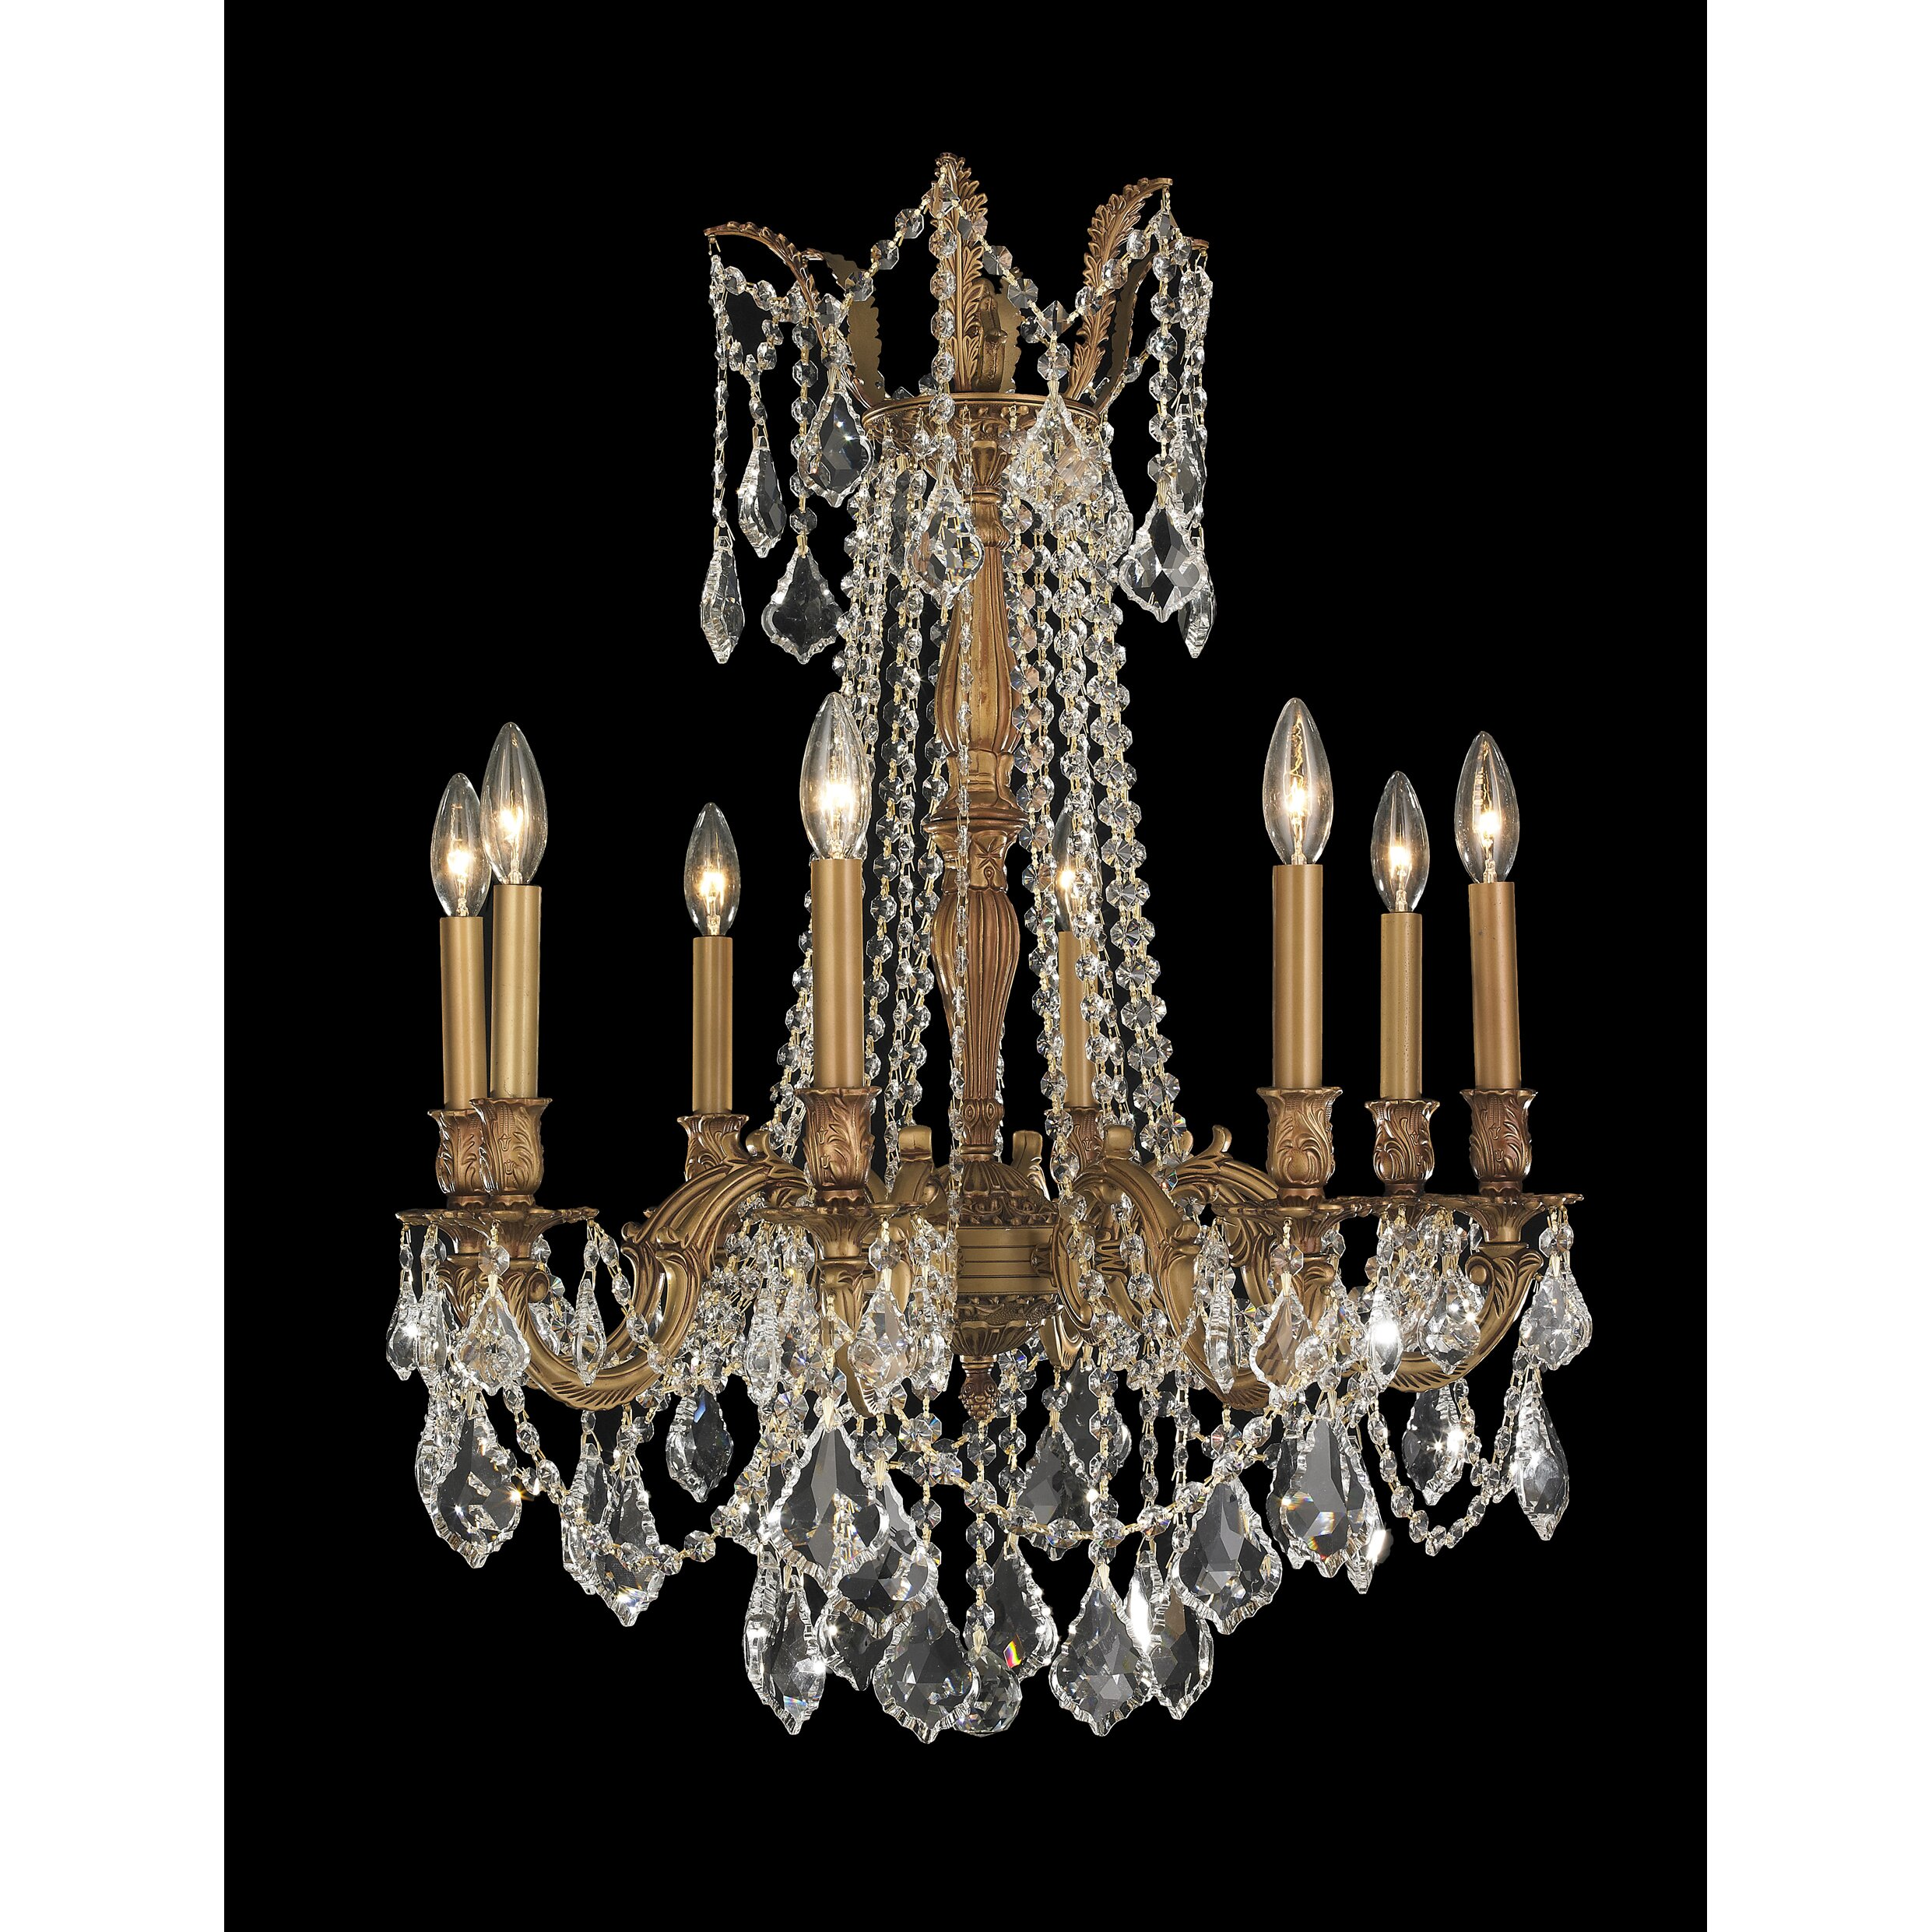 8 Light Crystal Chandelier: Worldwide Lighting Windsor 8-Light Crystal Chandelier,Lighting